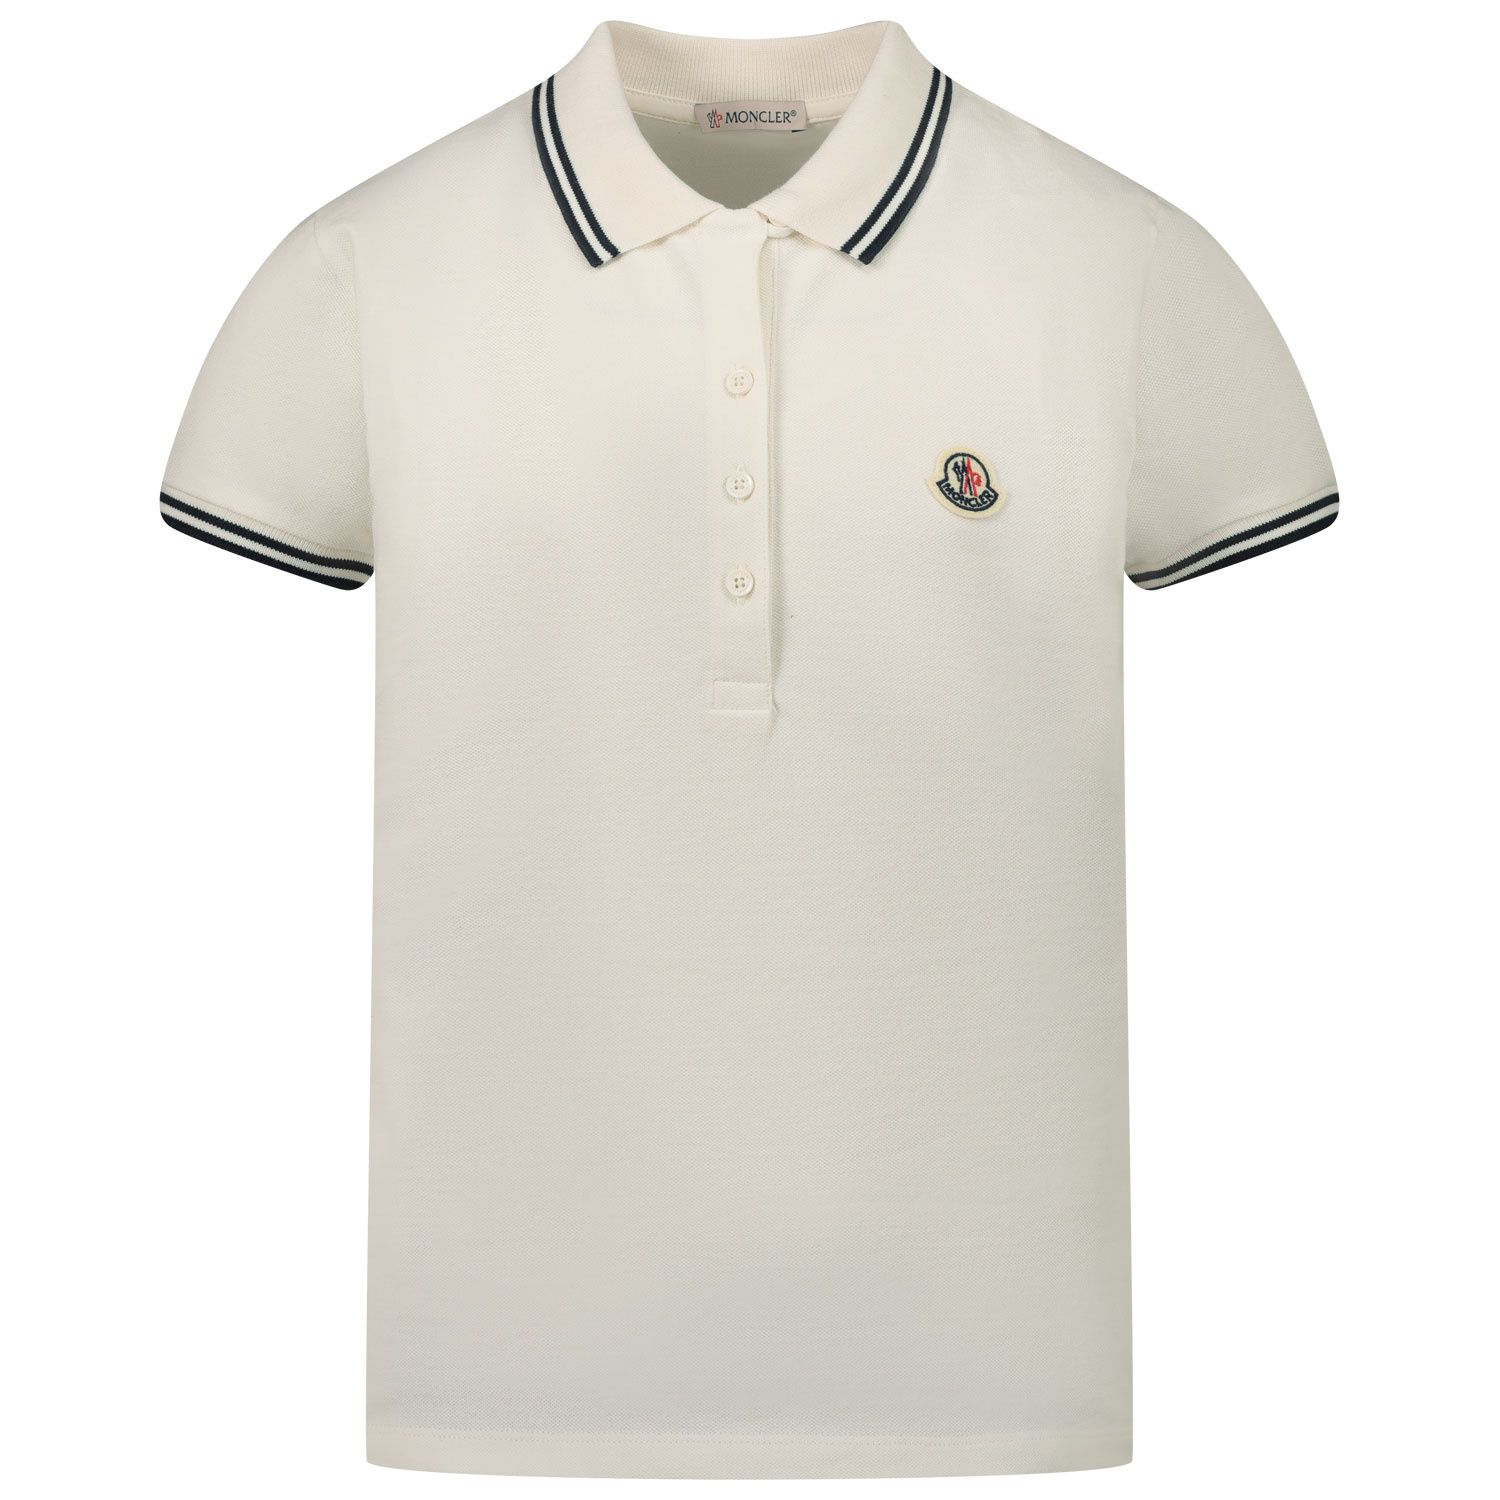 Picture of Moncler 8A70010 kids polo shirt off white